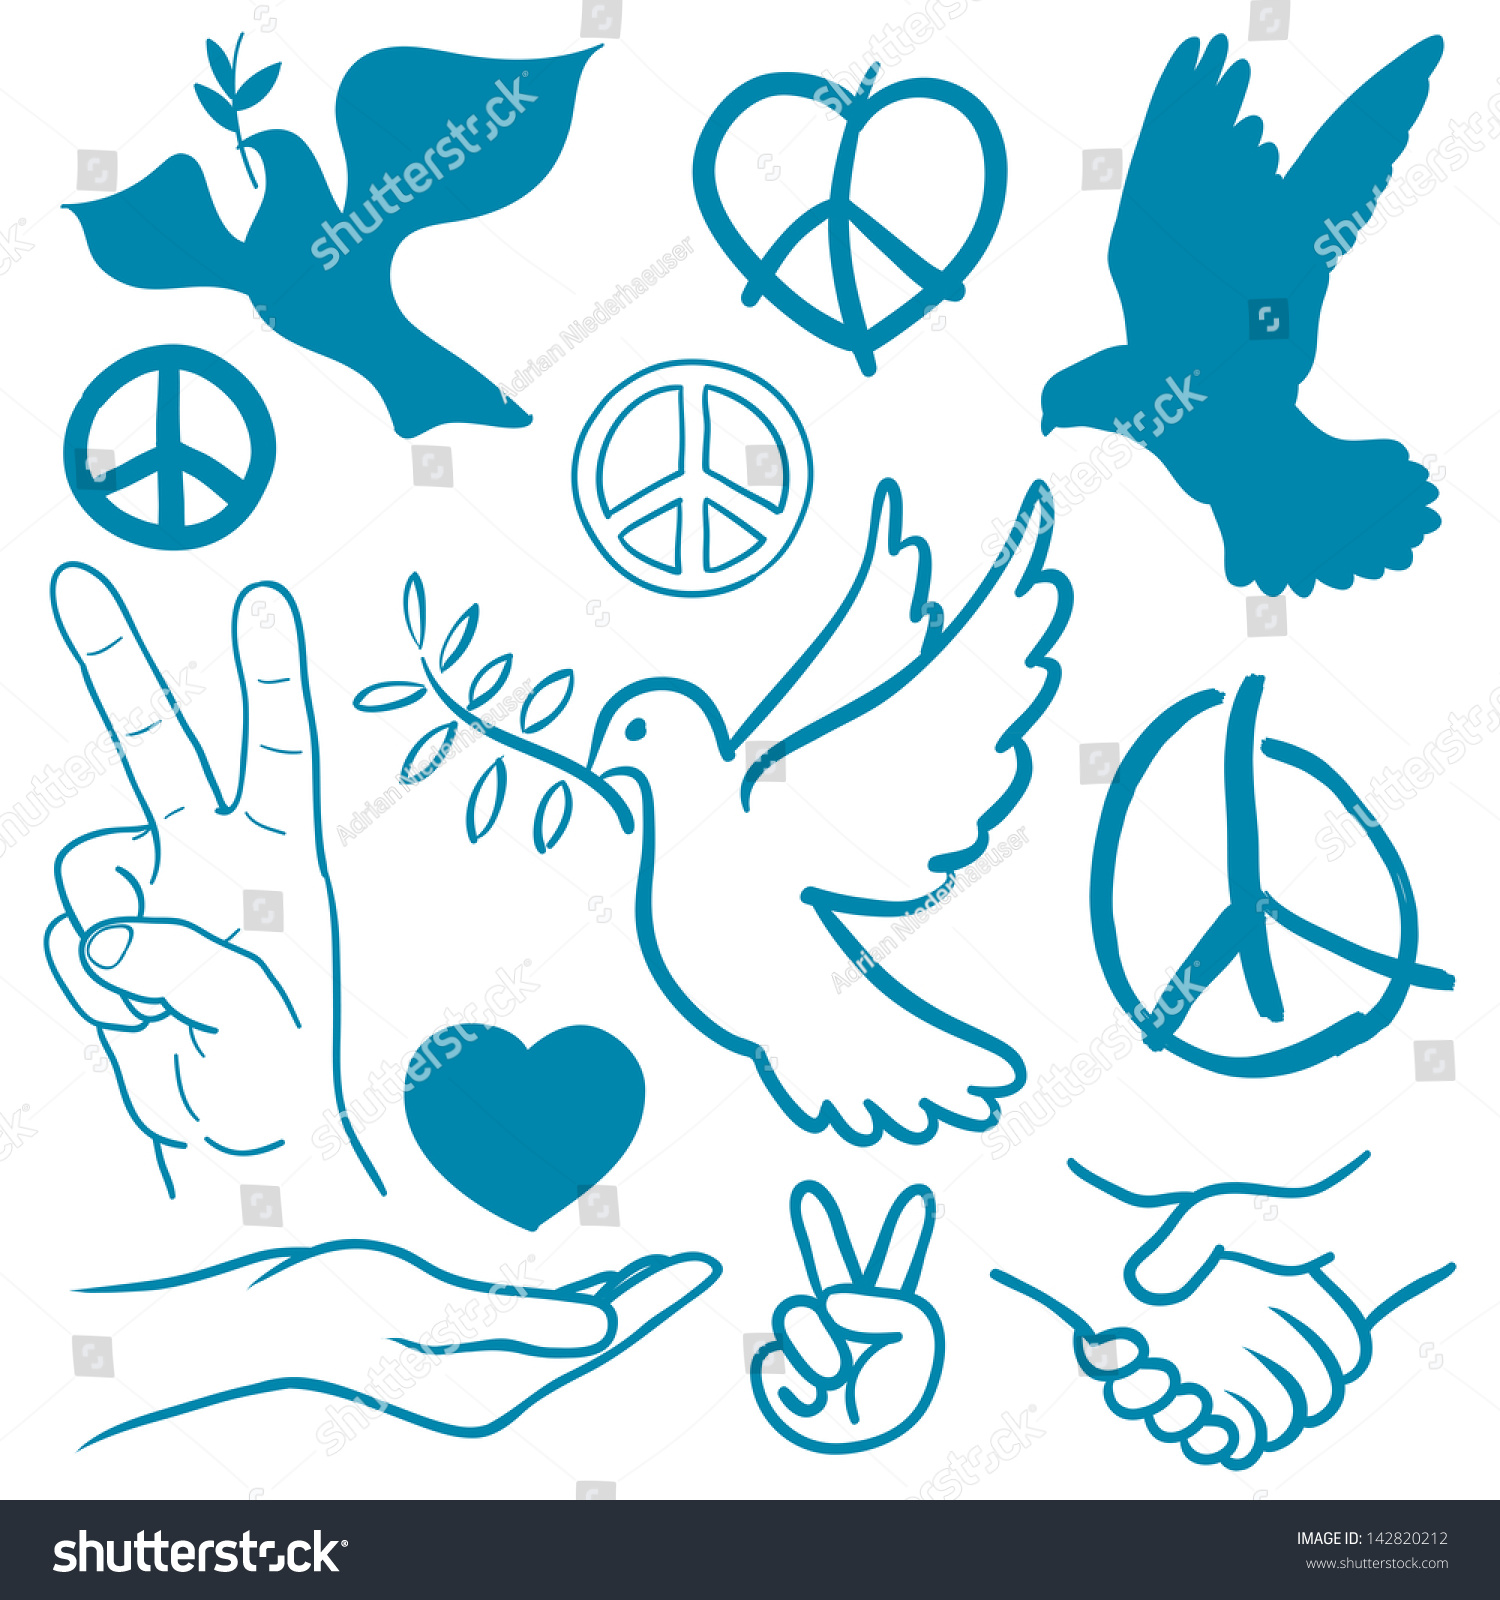 Download Collection Peace Love Themed Icons White Stock Vector ...